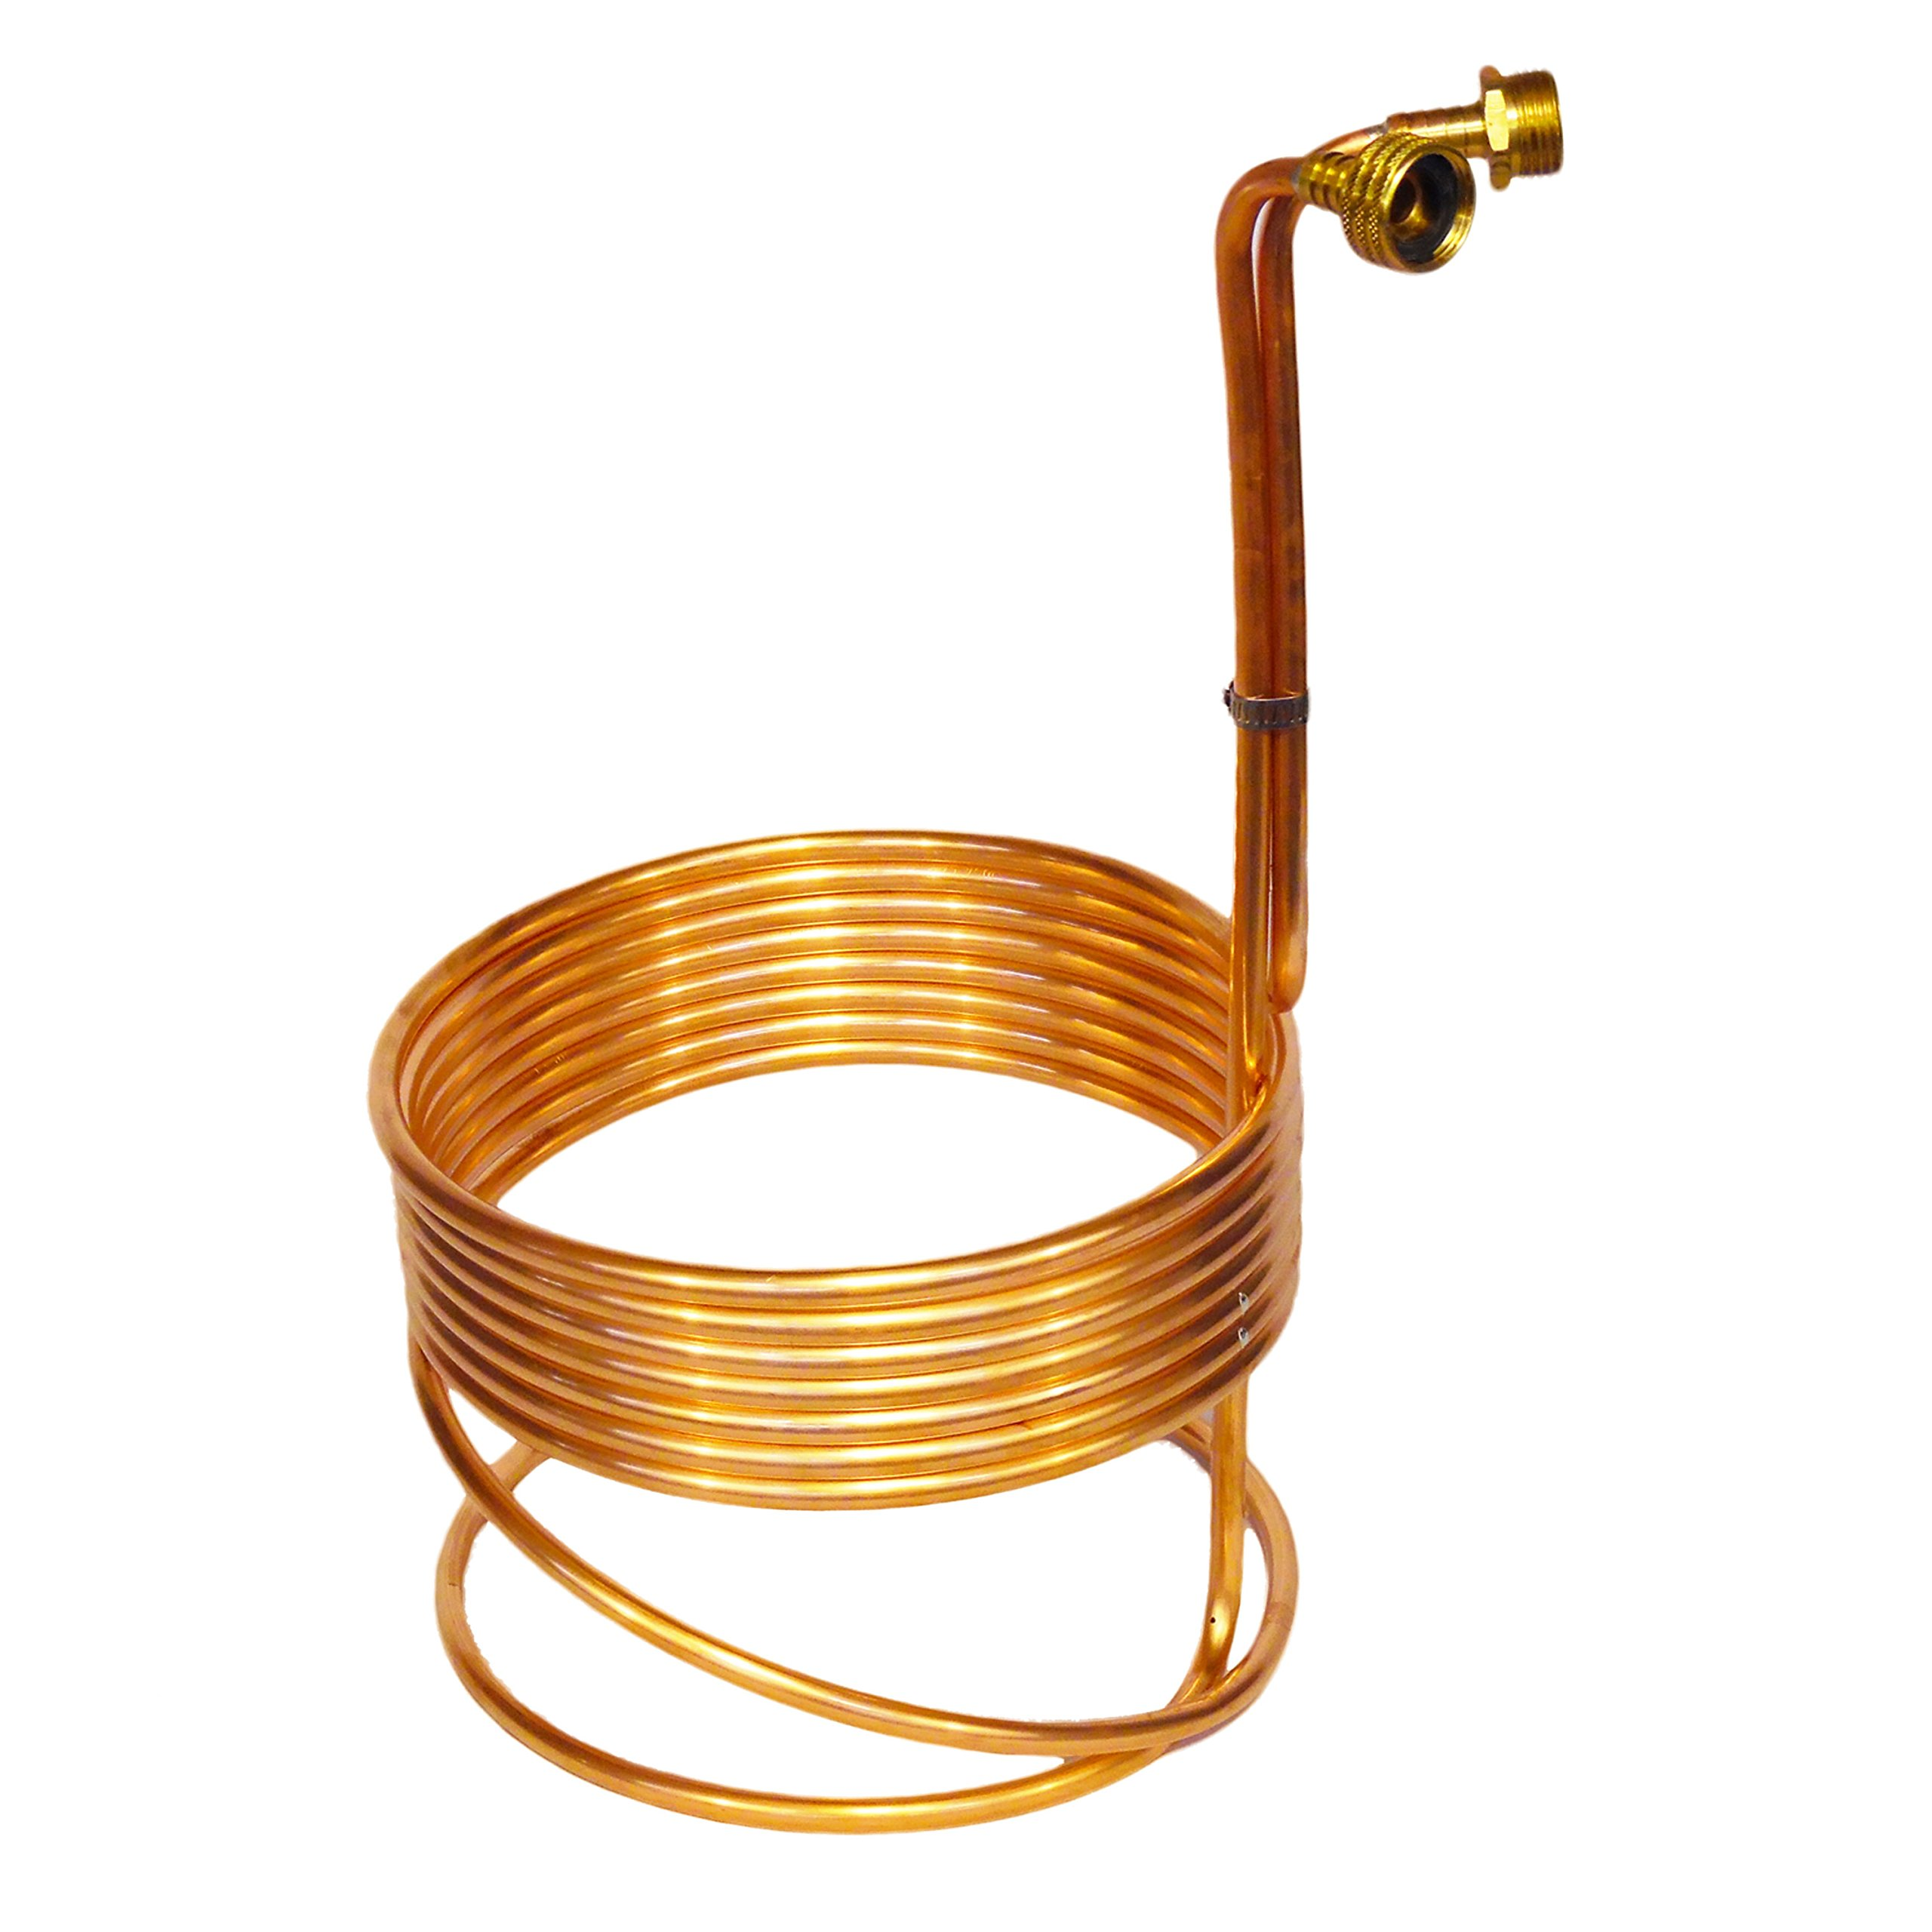 Copper Coil Immersion Chiller 25 Feet Length by NY Brew Supply